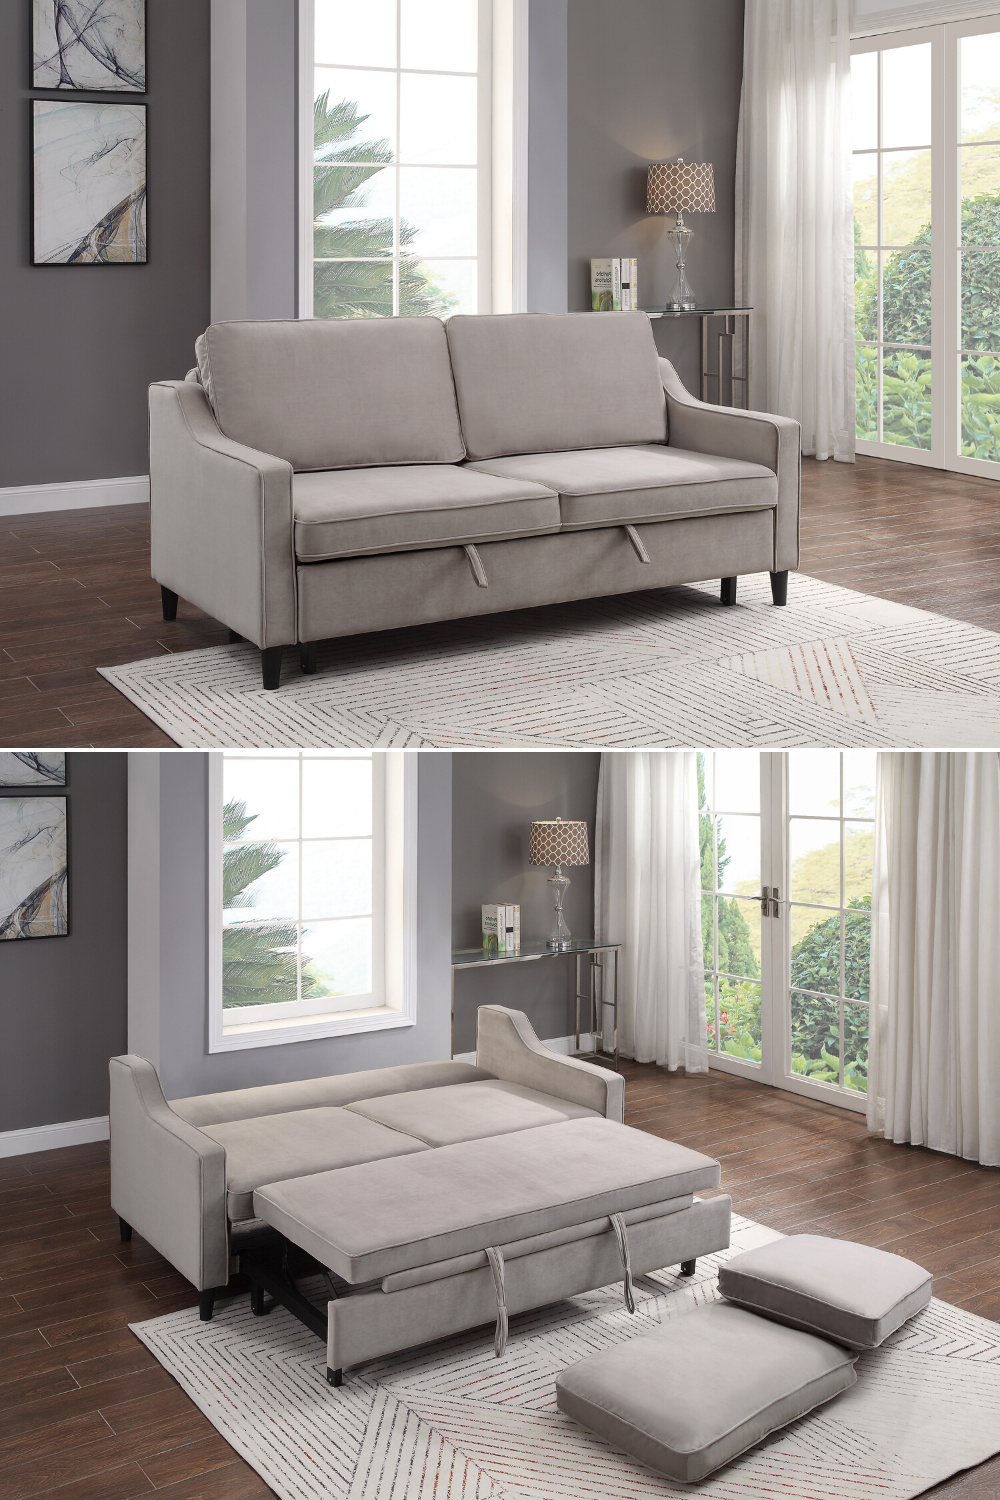 Dickinson Sofa With Pull Out Bed Pull Out Bed Small Living Room Rowe Furniture